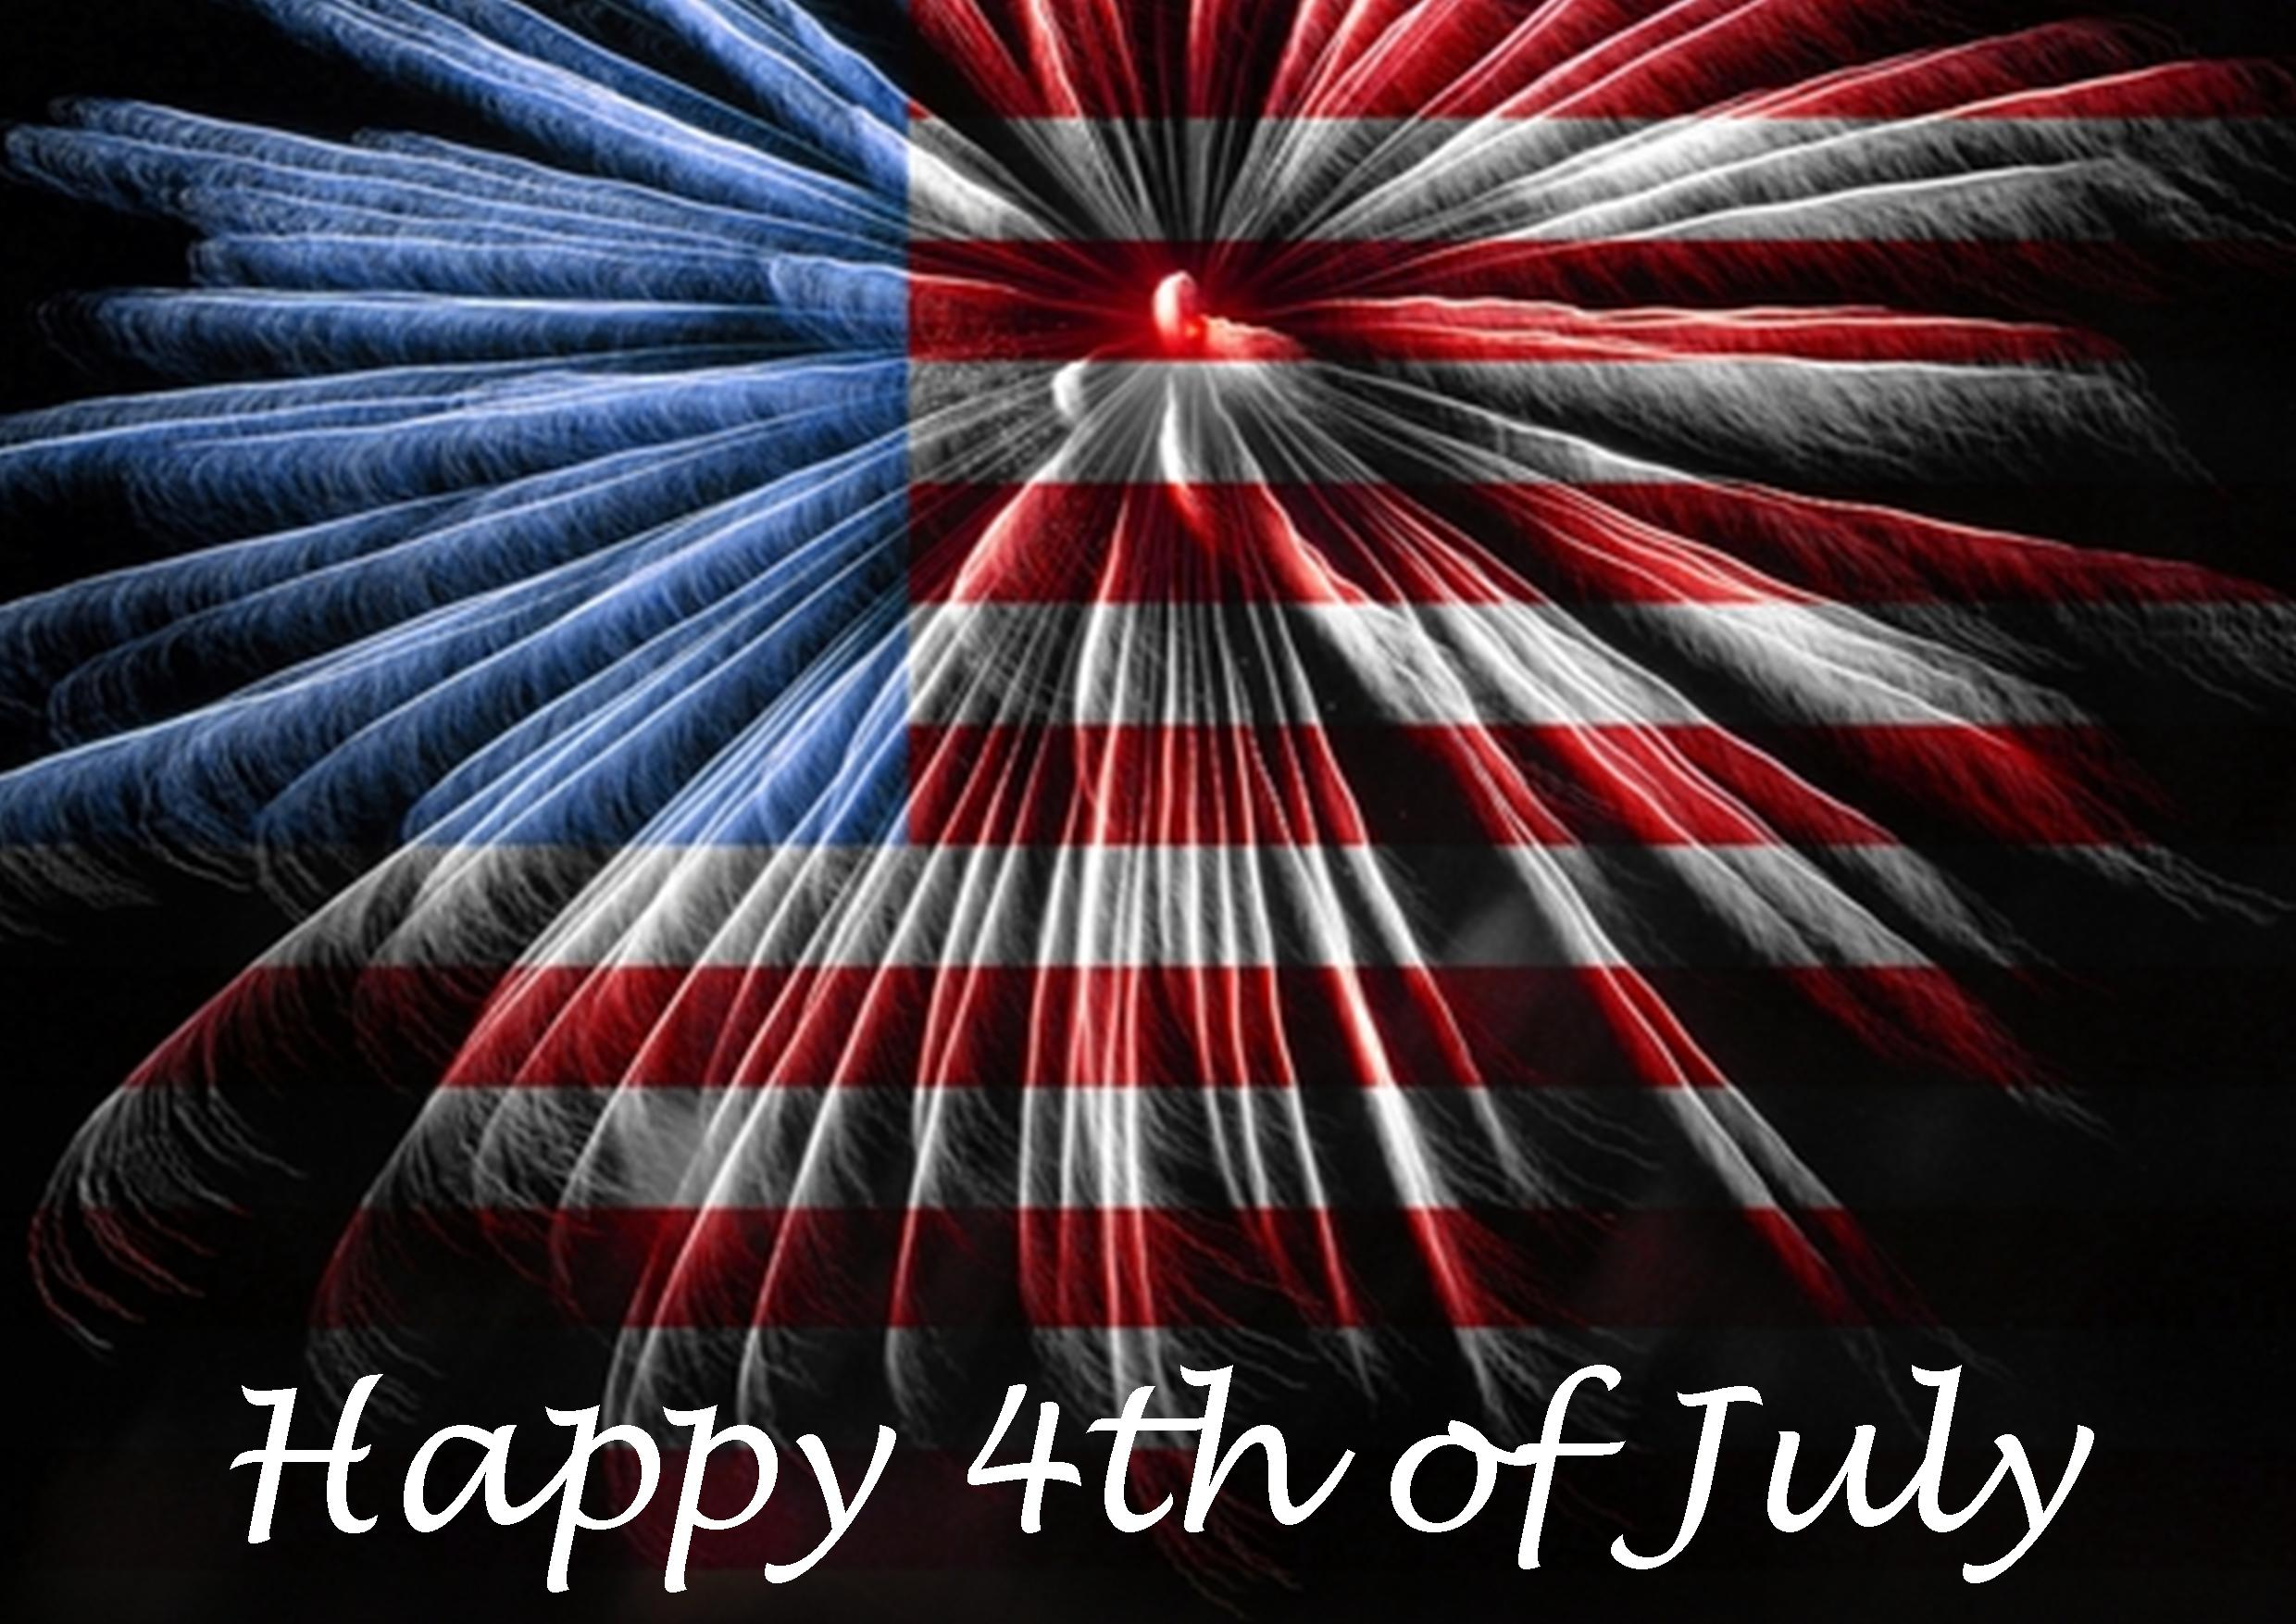 Happy 4th of July Images 2020 | Fourth of July Images, Photos ...